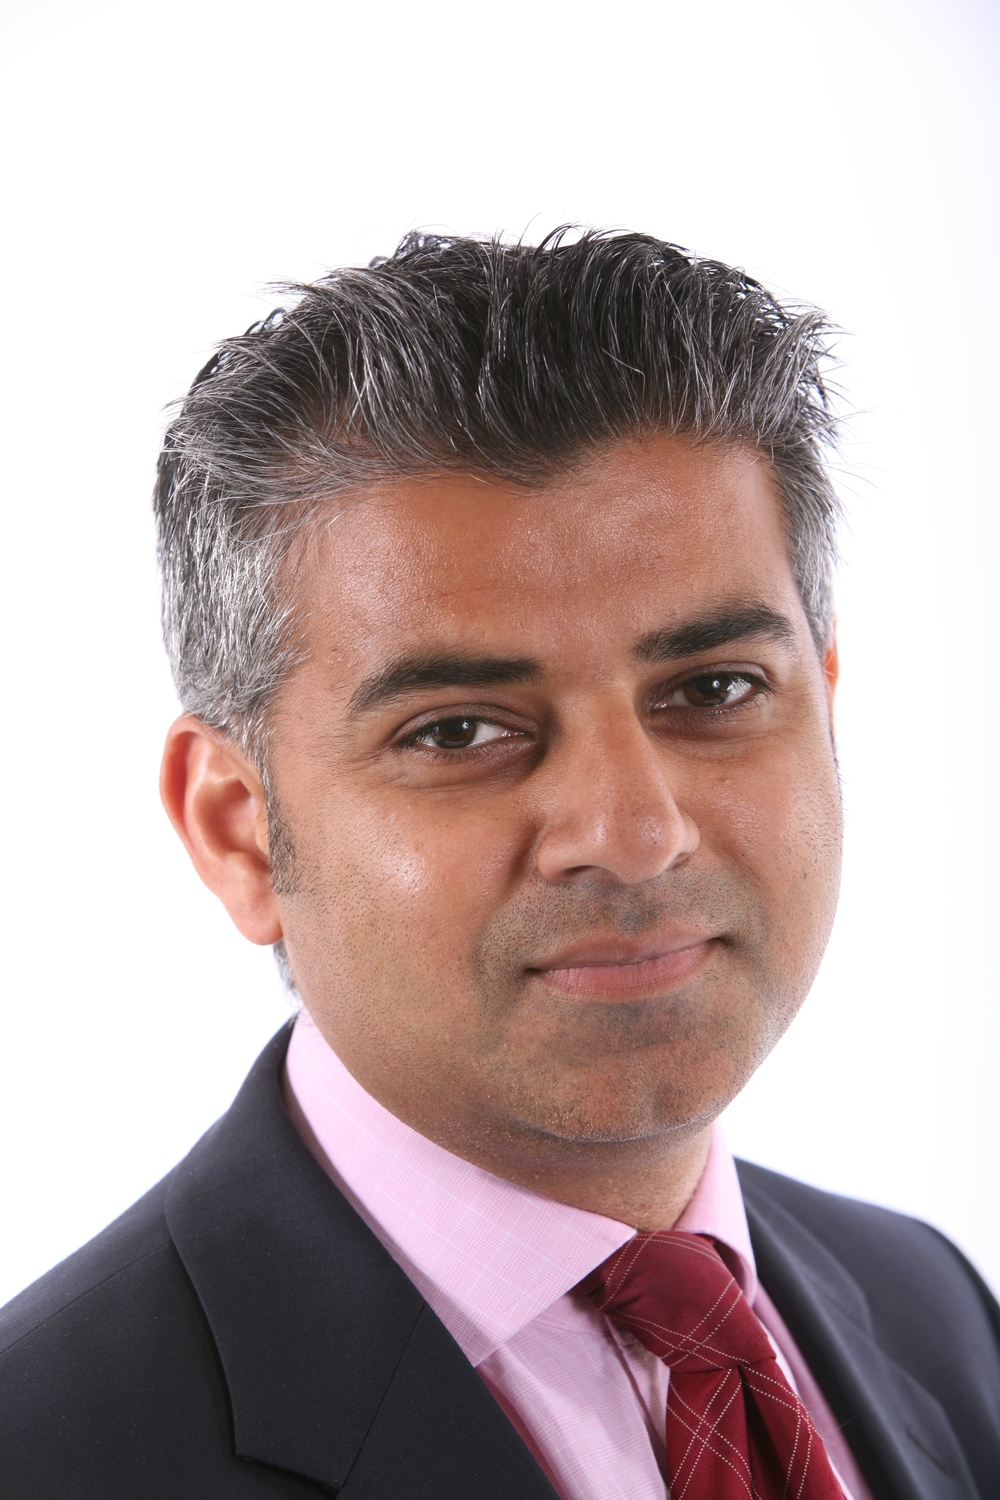 London's newly elected Muslim mayor, Sadiq Khan (pictured), suggested that he would be open to visiting Tel Aviv. Credit: National Archives via Wikimedia Commons.